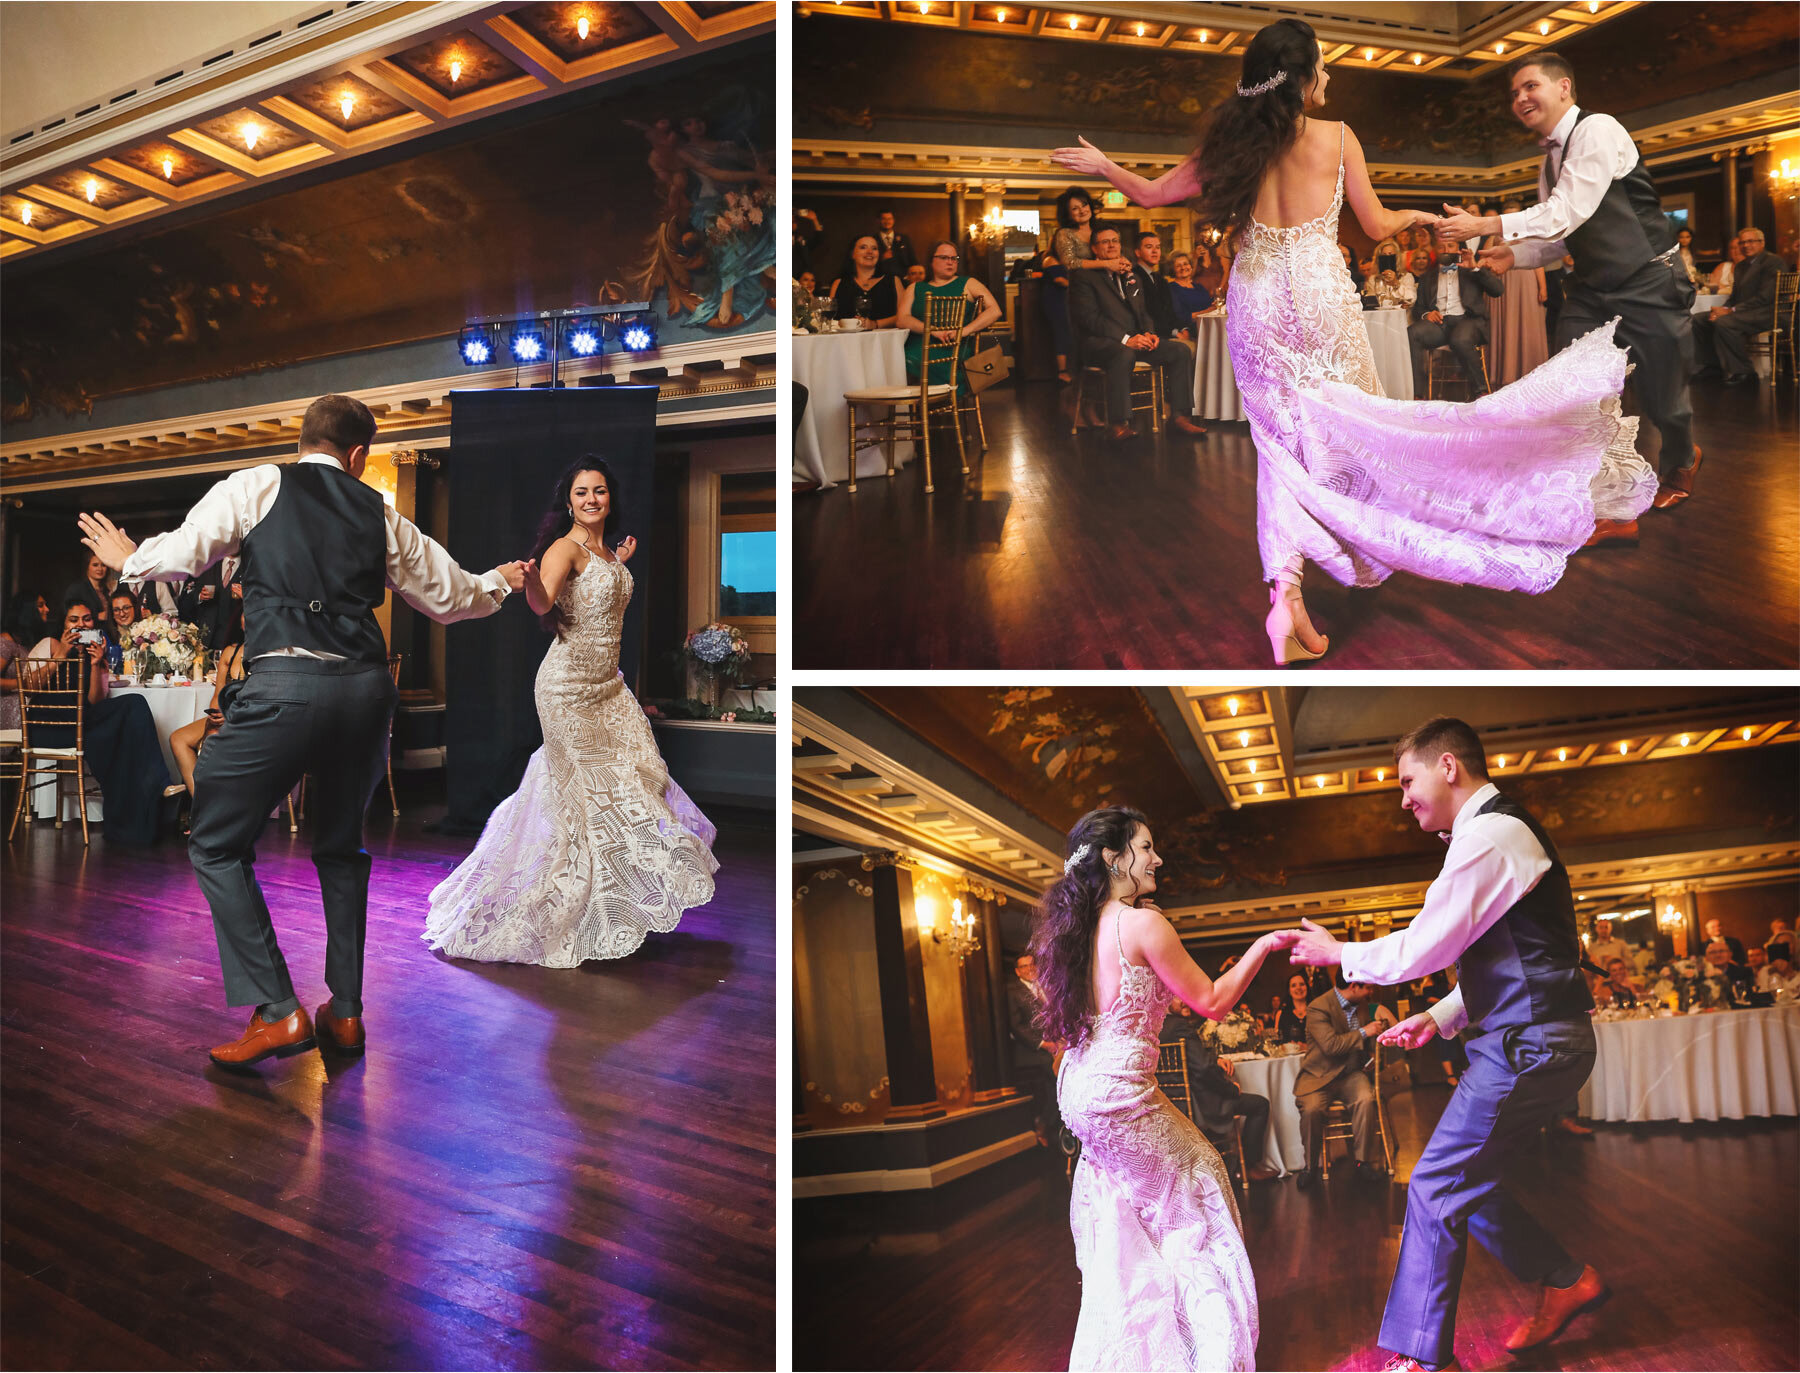 14-Wedding-by-Vick-Photography-Minneapolis-Minnesota-Semple-Mansion-Historic-Venue-Reception-Bride-Groom-Dancing-Dance-Kaitlyn-and-Nate.jpg